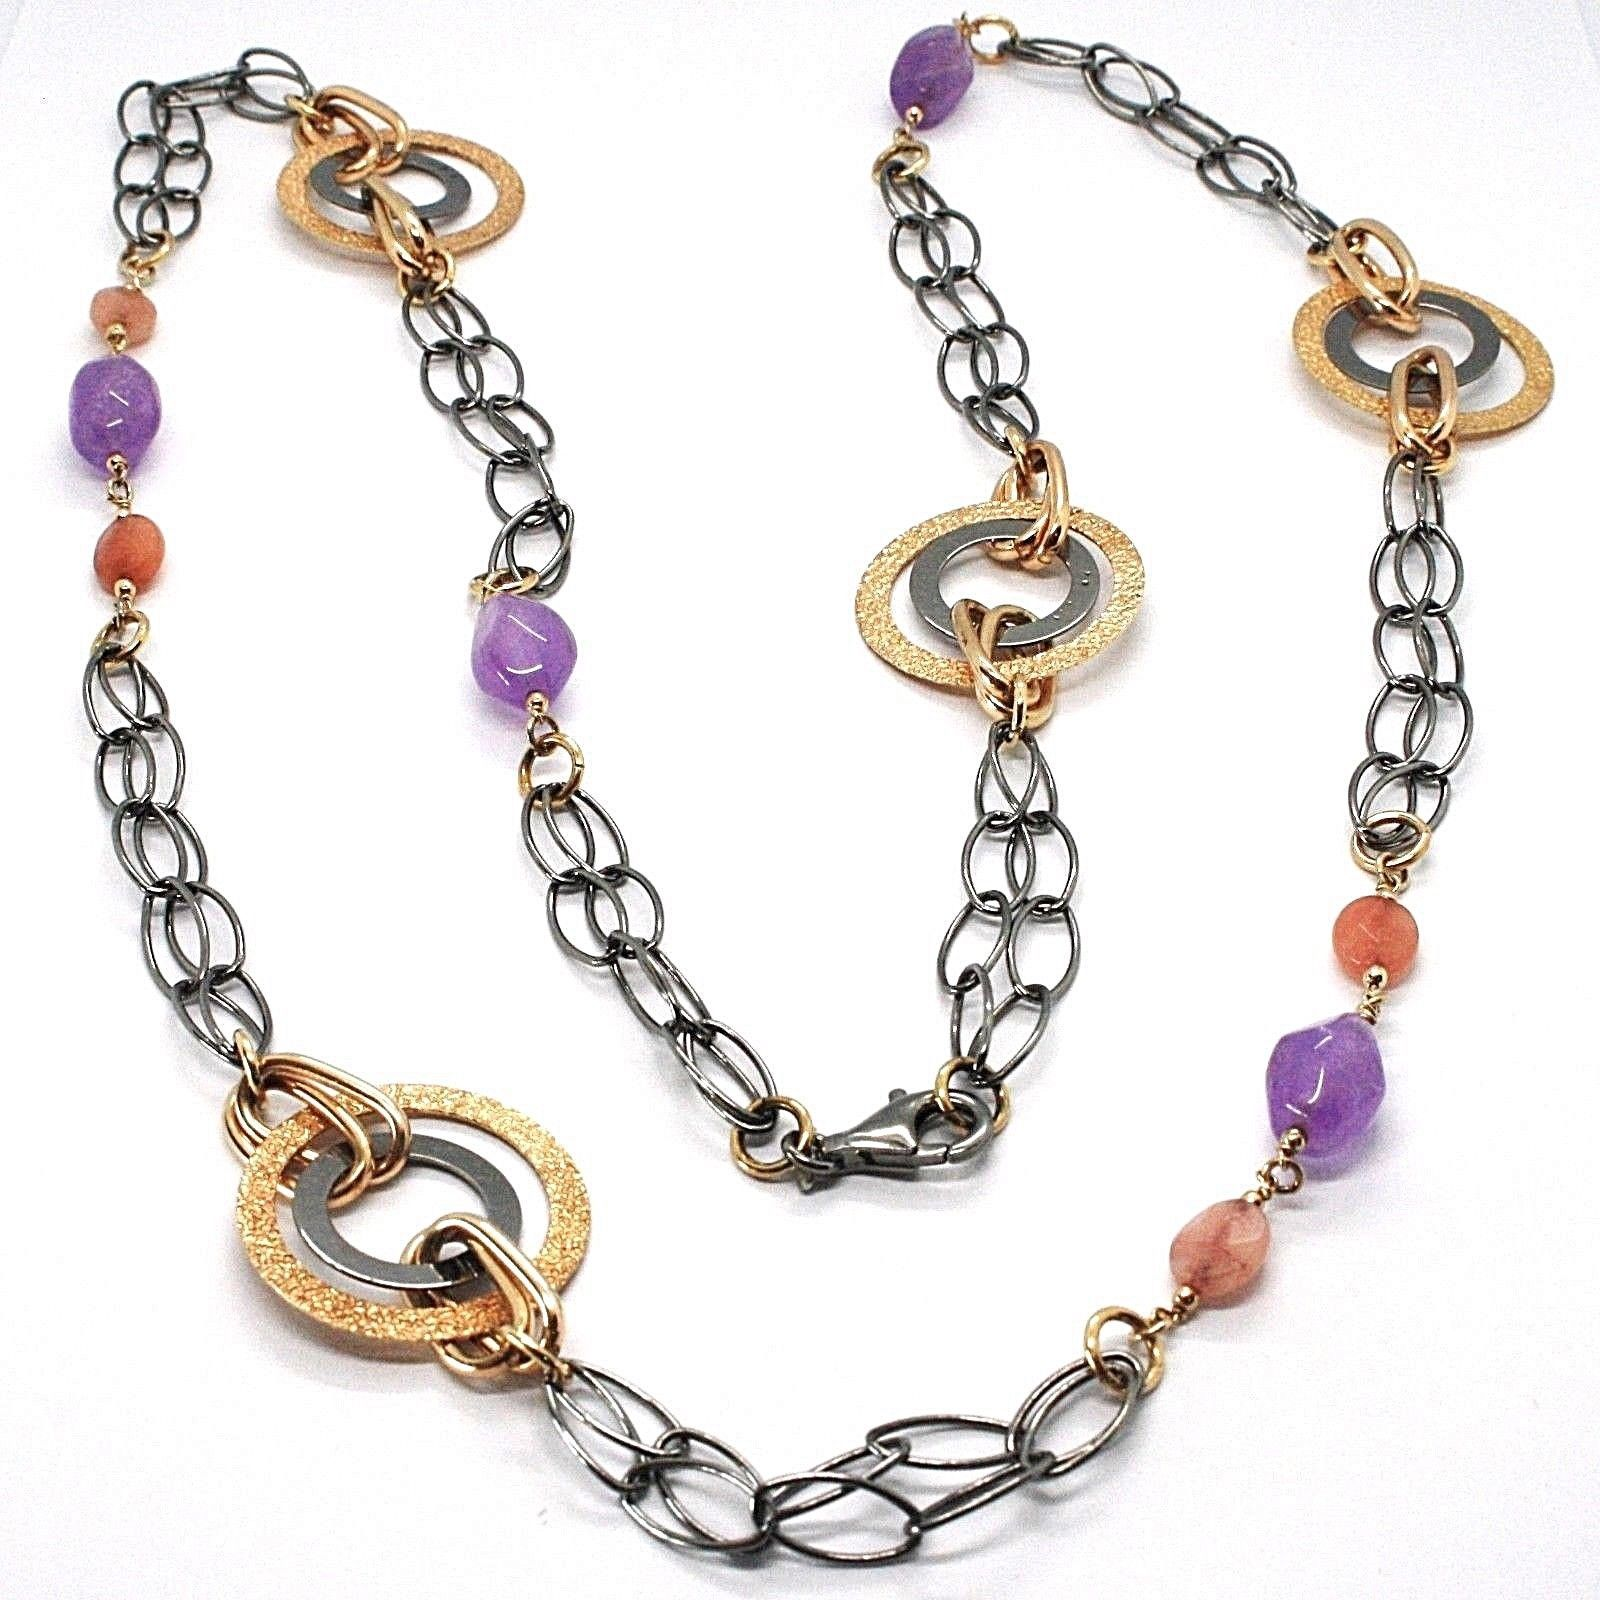 925 Silver Necklace, Burnished and Pink, Circles, Amethyst, Agate, Length 100 cm